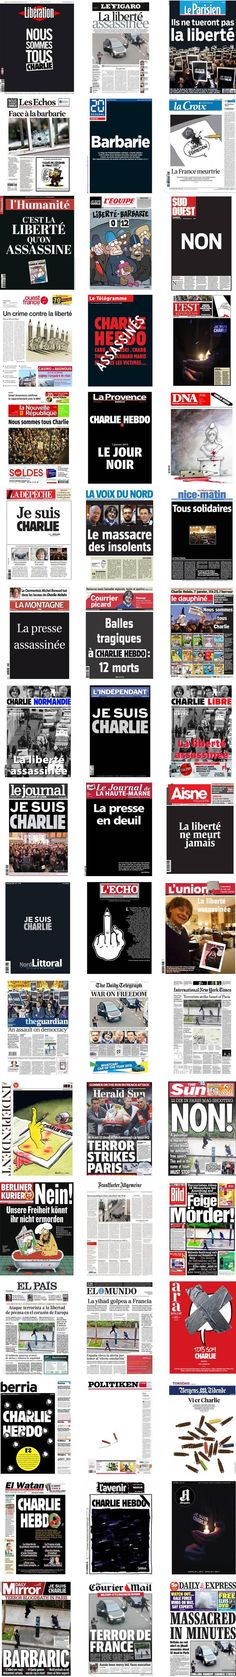 "Attack ""Charlie Hebdo"" 66 of some of the world newspapers The World Newspaper, Caricatures, Satire, Attentat Paris, Pray For France, Pray For Paris, Newspaper Cover, Charlie Hebdo, Freedom Of Speech"